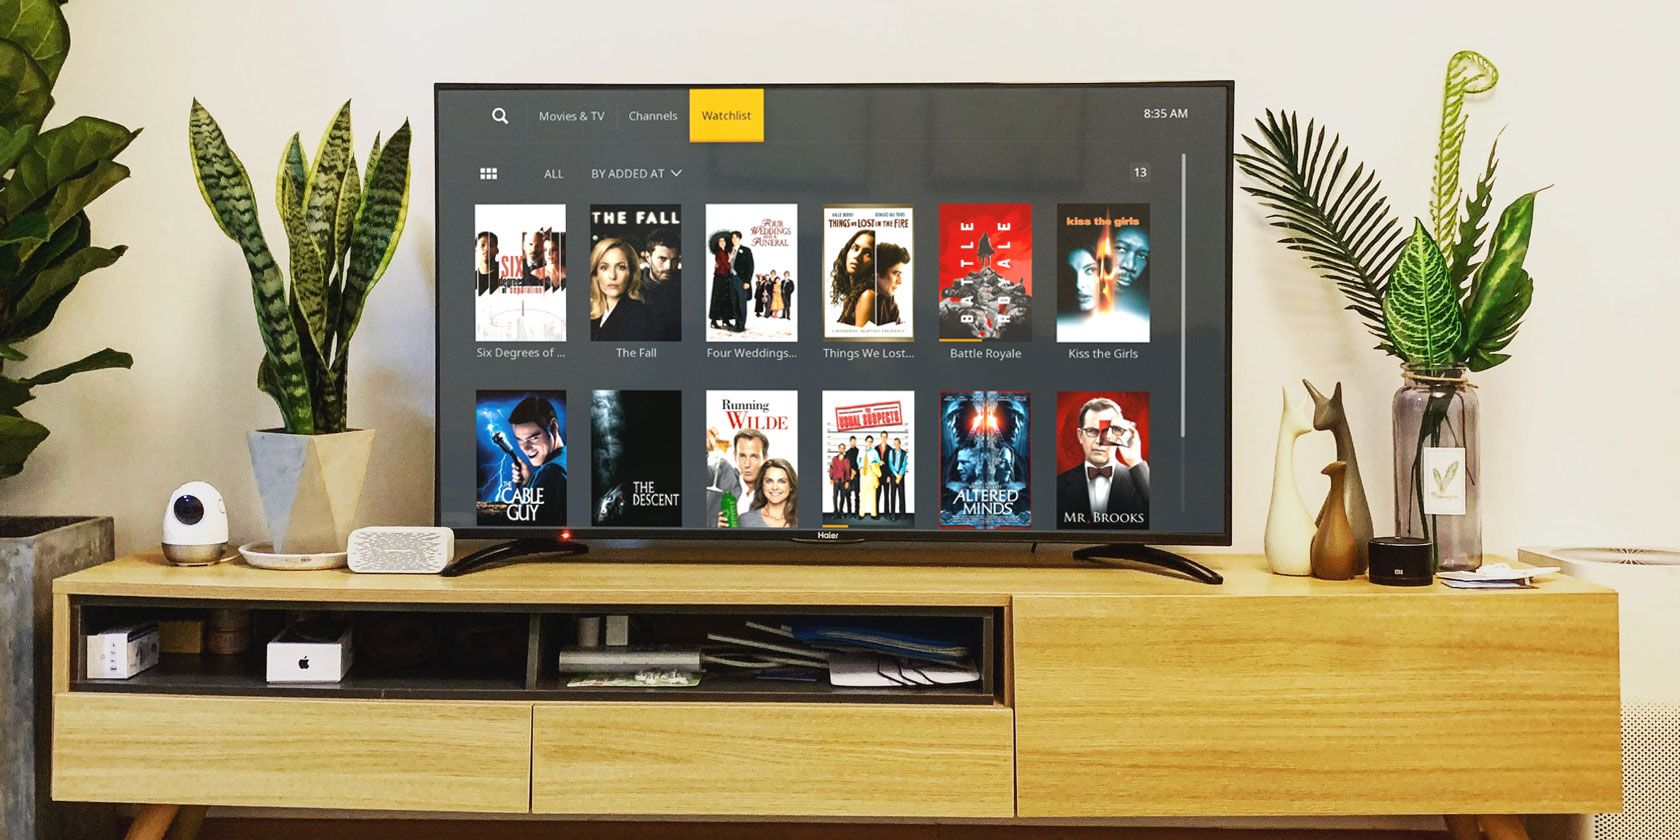 How to Organize Your Plex Library Using Collections